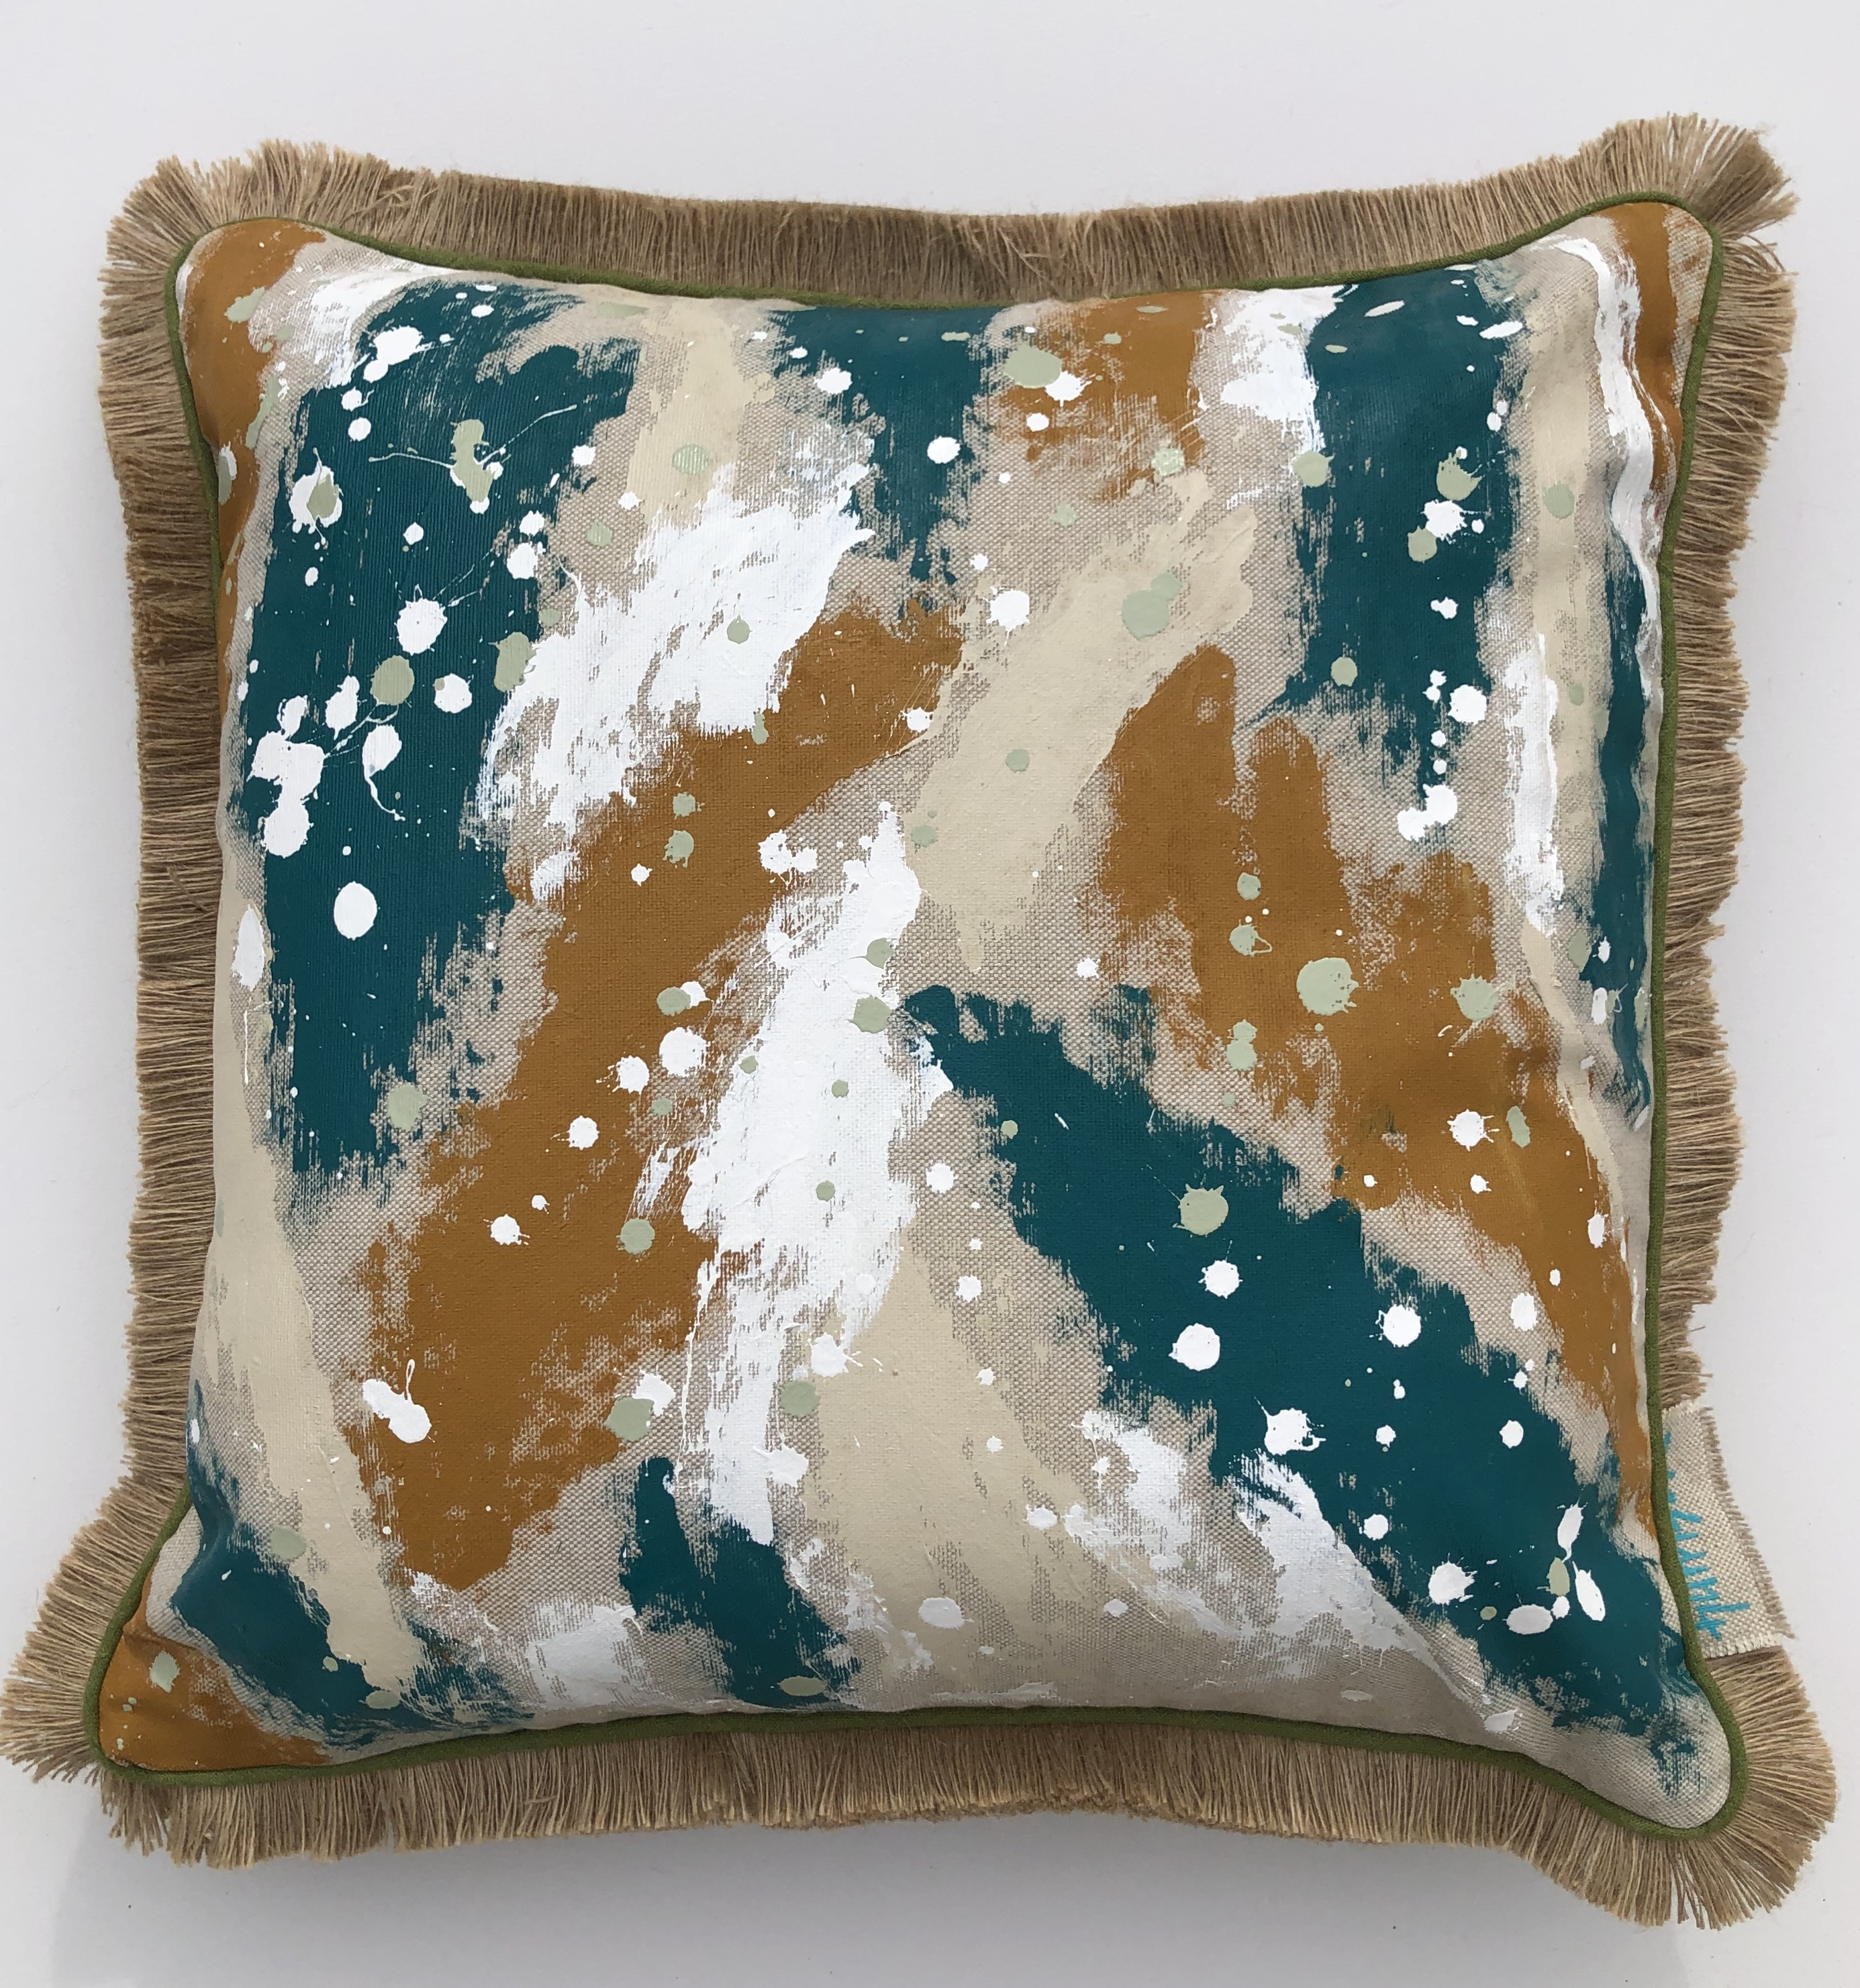 SAND DUNES PILLOW II